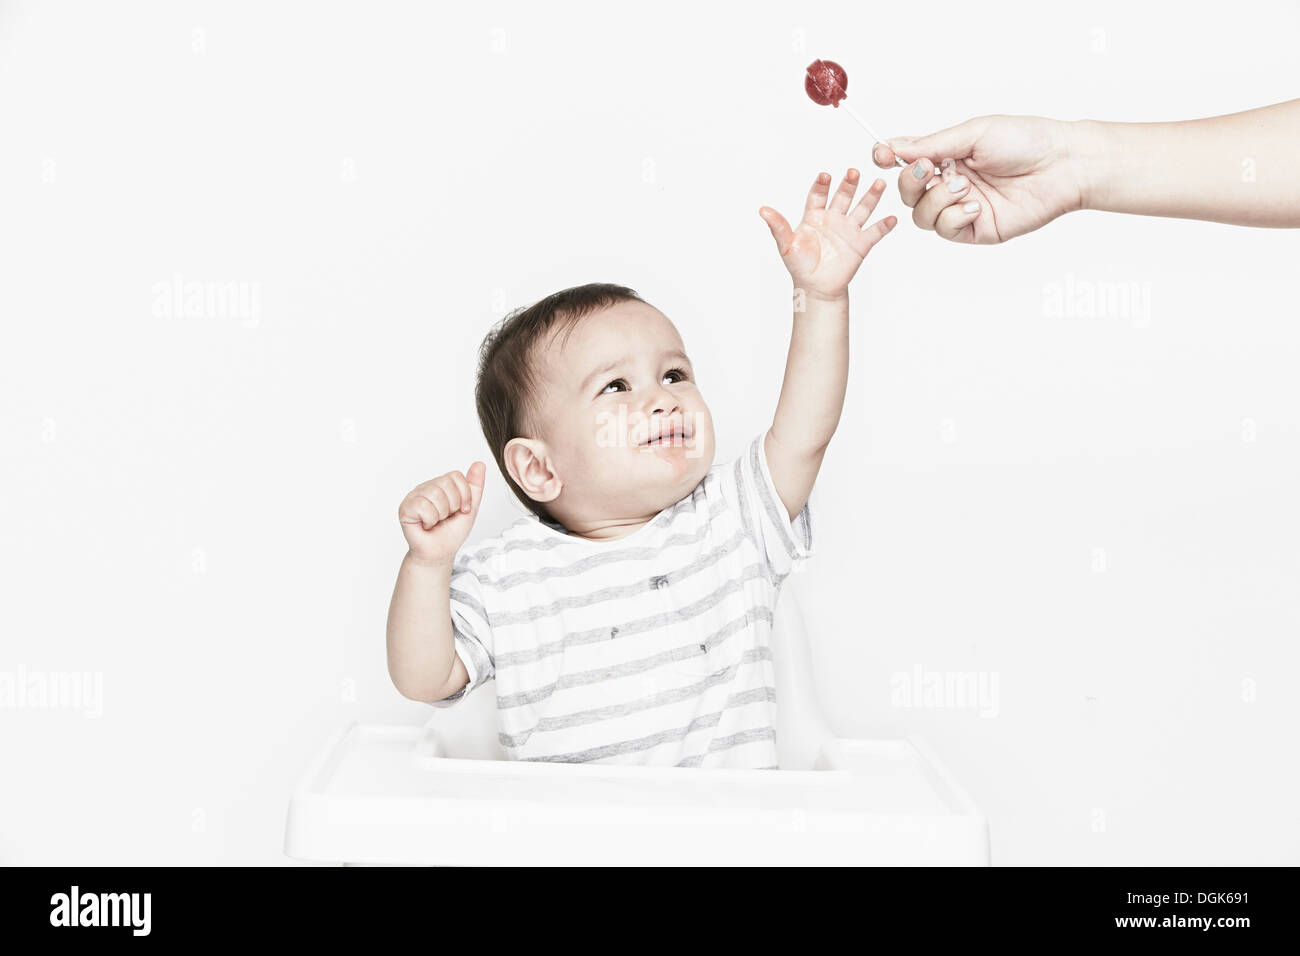 Baby boy reaching for lollipop - Stock Image